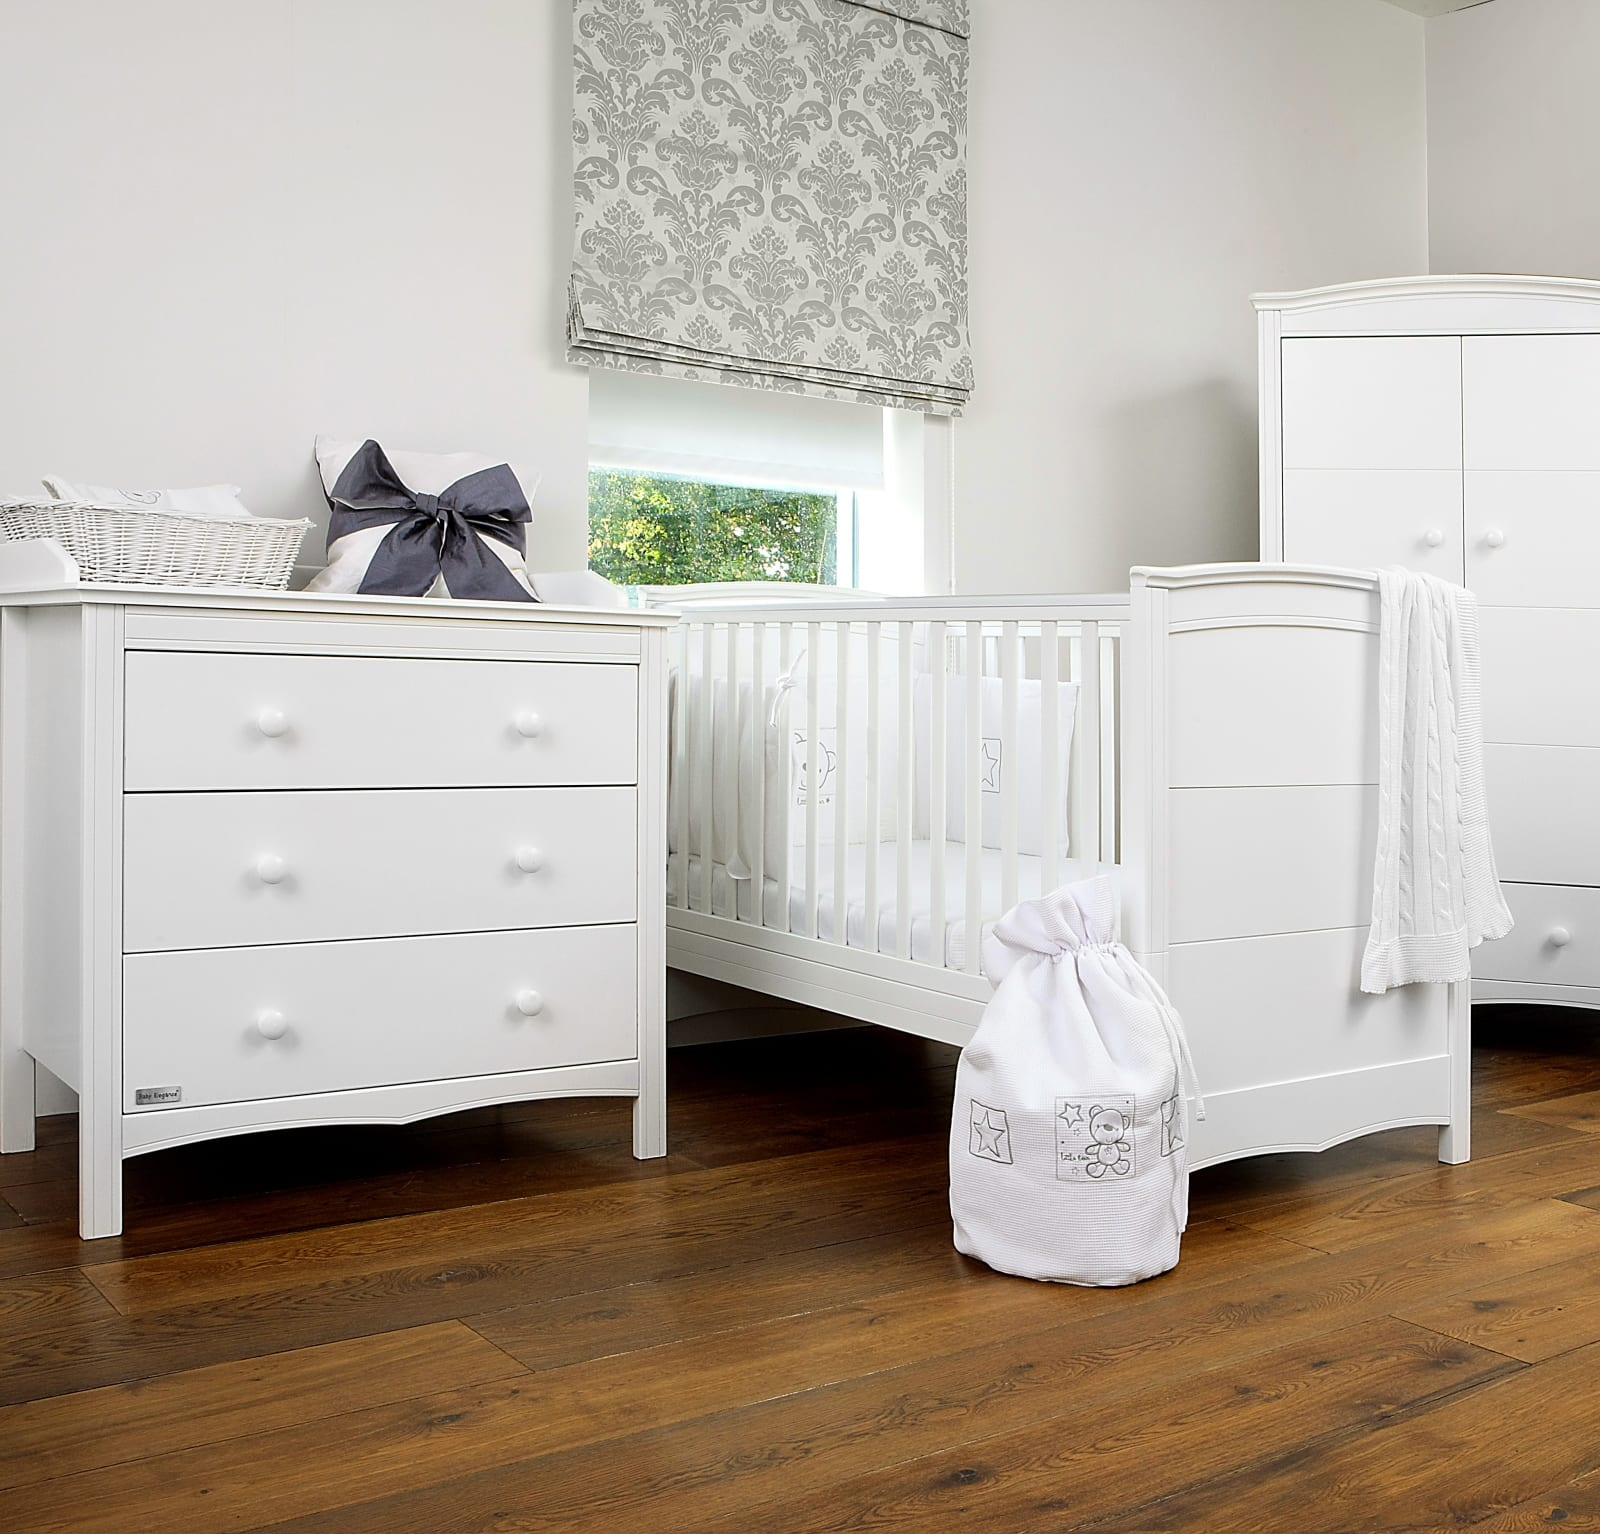 Elegant Chest of drawers – White product image